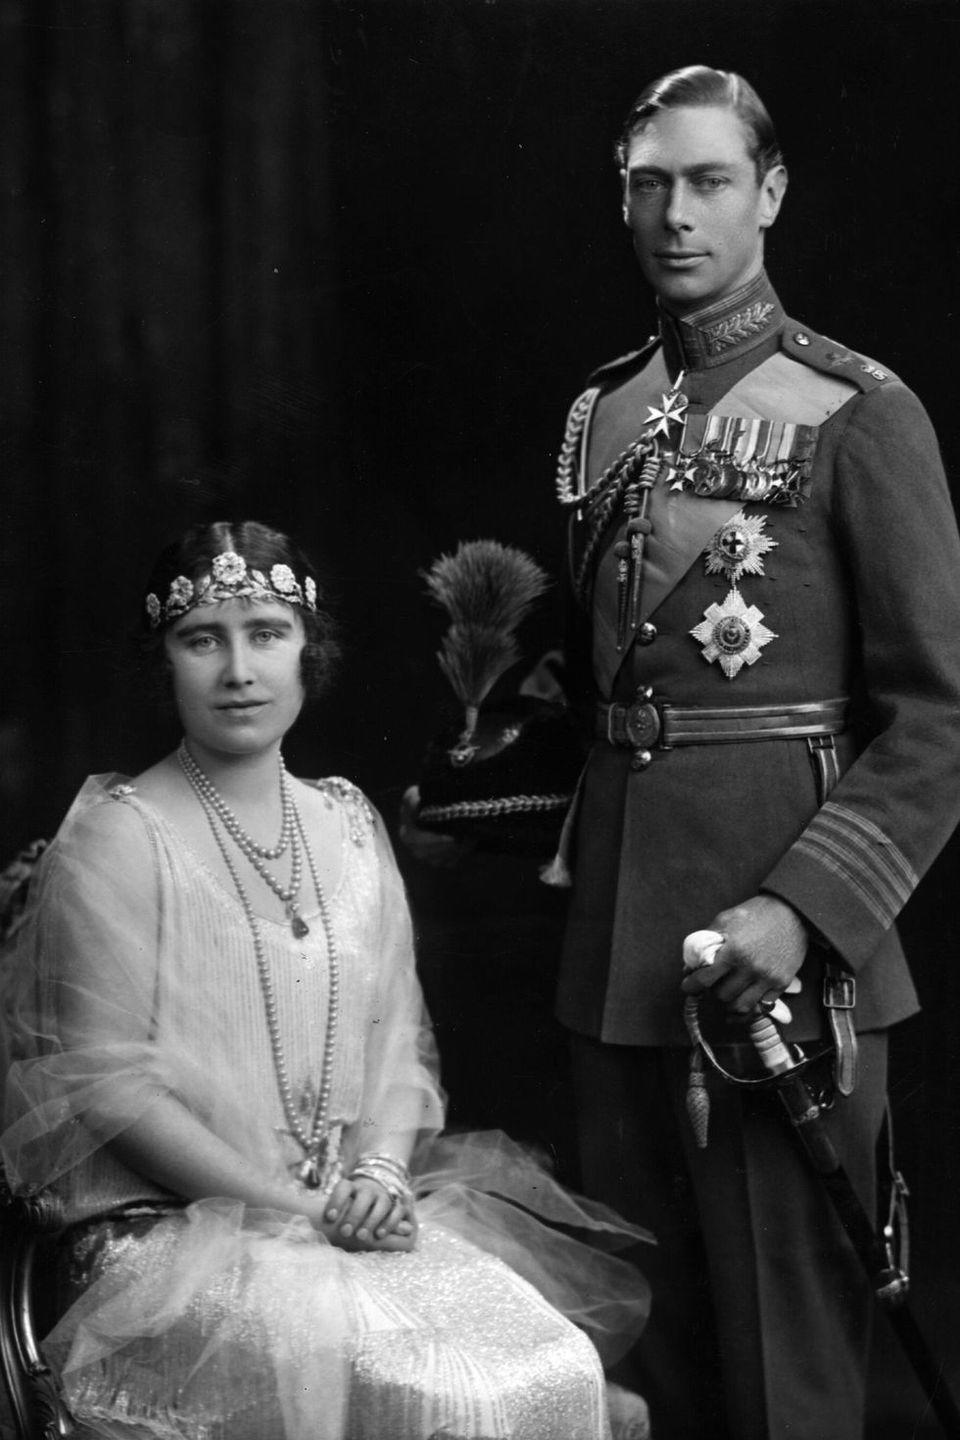 <p><strong>Wedding date: </strong>April 26, 1923 </p><p><strong>Wedding tiara: </strong>For her bridal portraits, Queen Elizabeth's mother wore the Strathmore tiara, which was a wedding gift from her father, the Earl of Strathmore. The tiara likely dates back to the late nineteenth century, and it features a garland of roses set with rose-cut diamonds. </p>